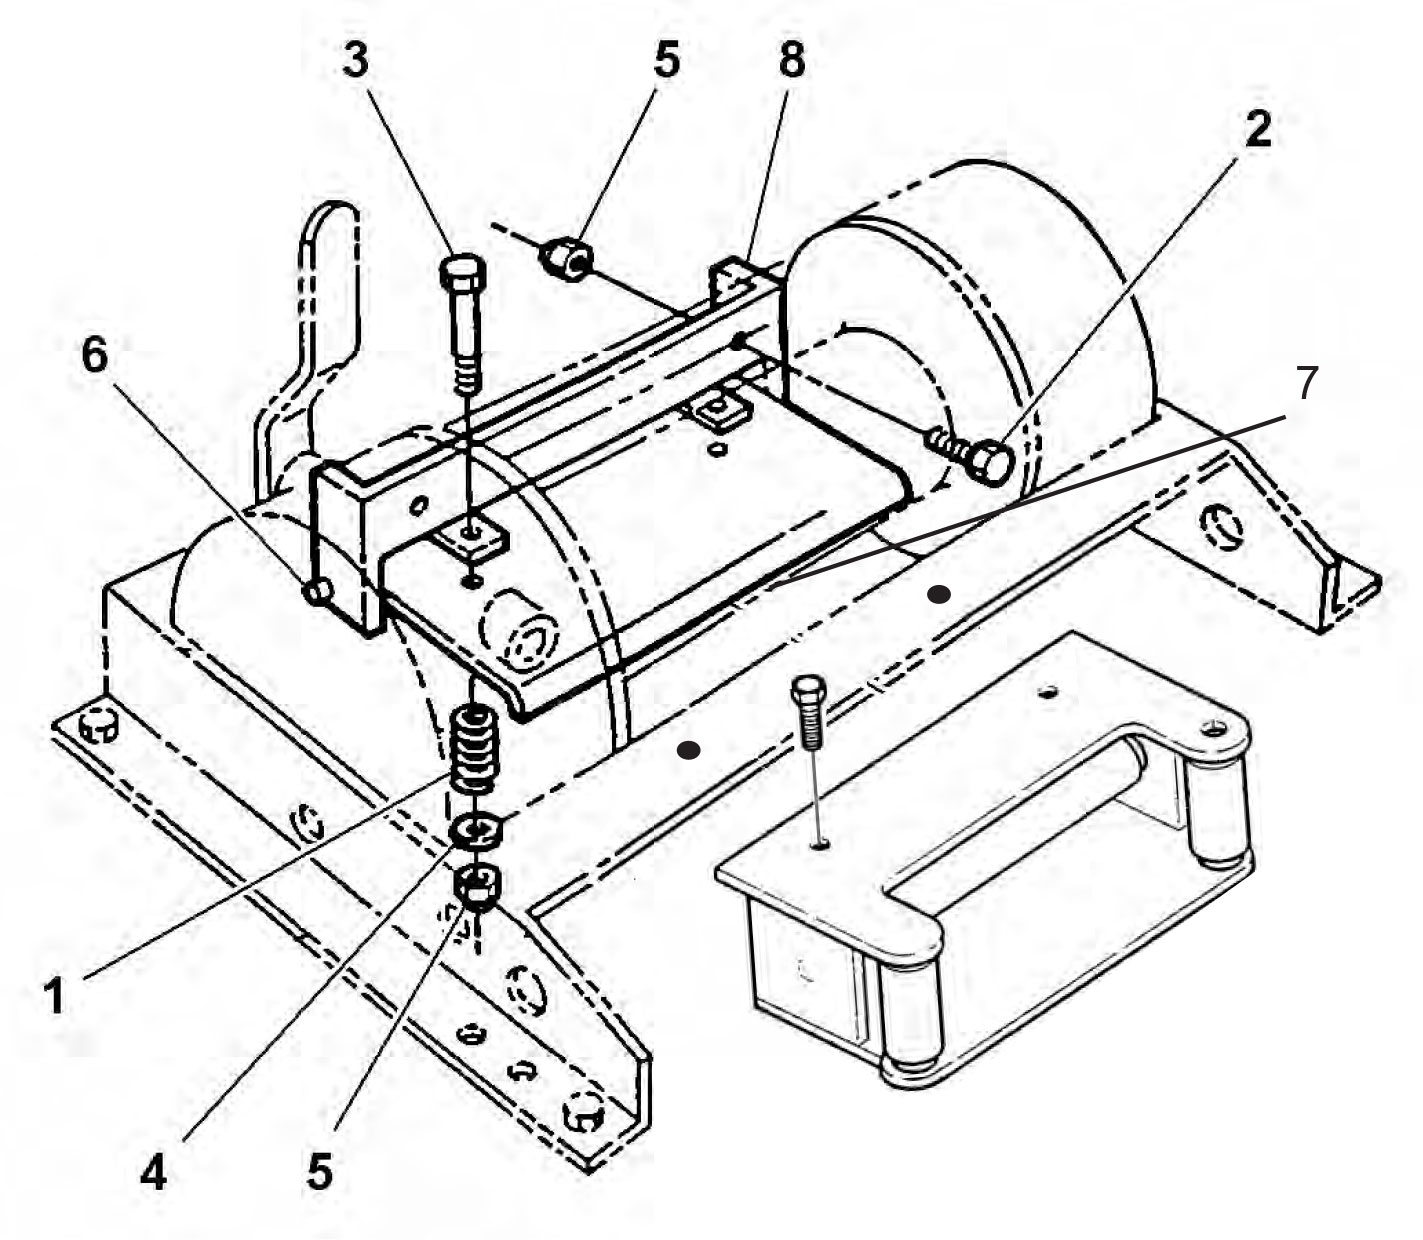 hight resolution of warn winch diagram as well warn winch a2500 wiring diagram further warn 2 warn 2 5ci